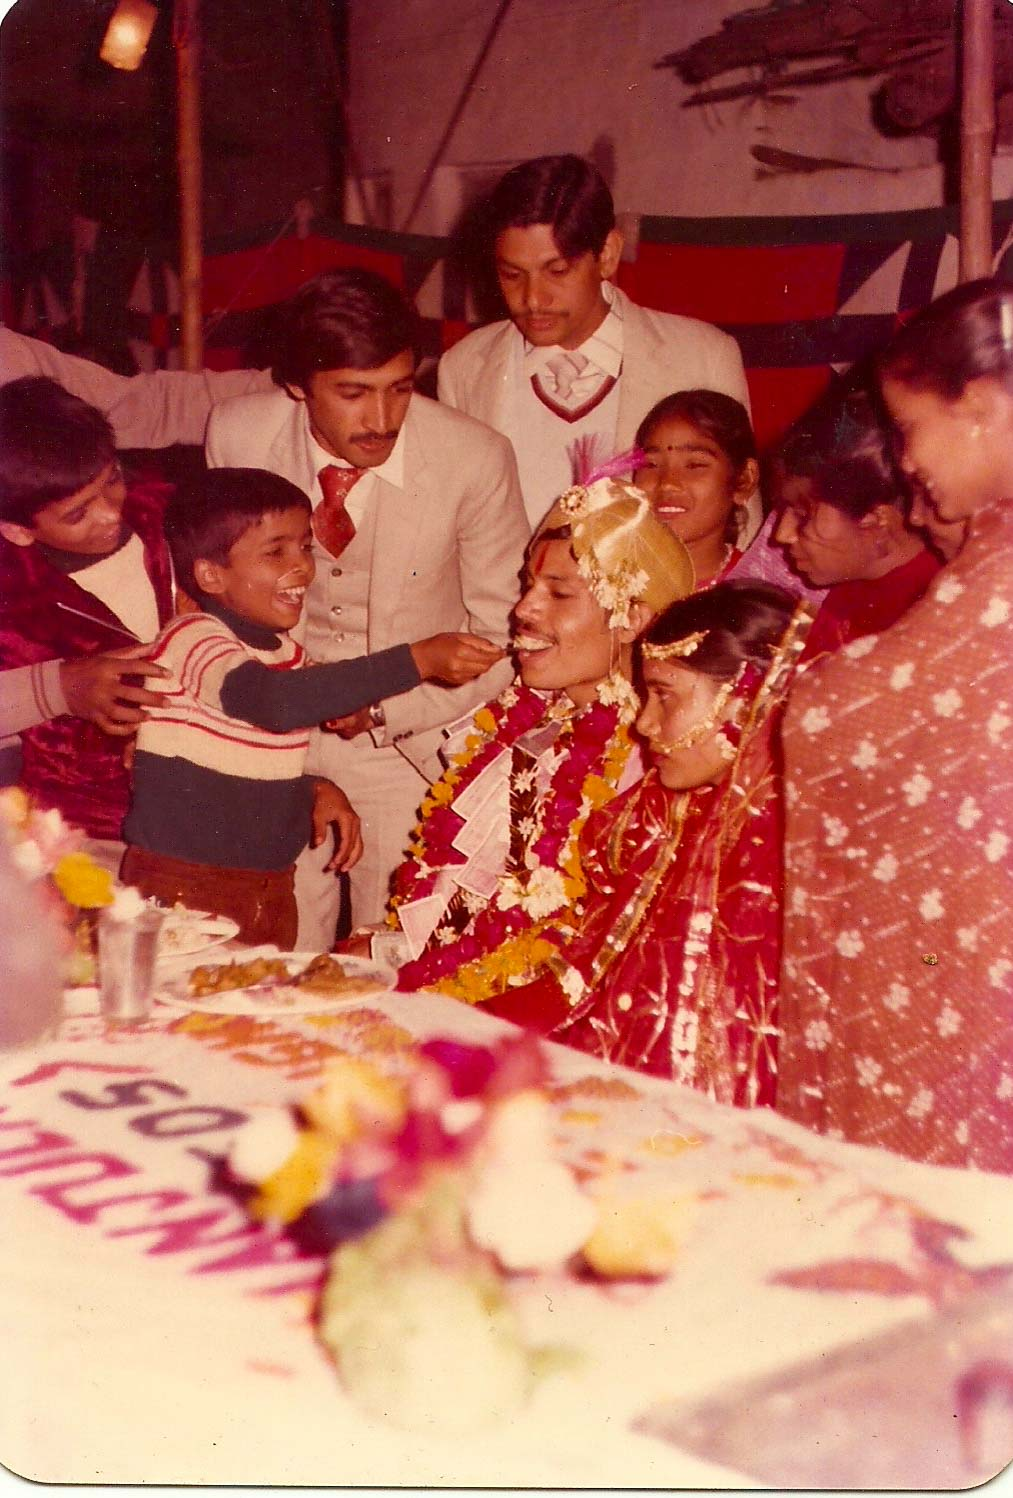 A picture from my parents' wedding album which surely seems candid. The photographer would be called a traditional photographer today.